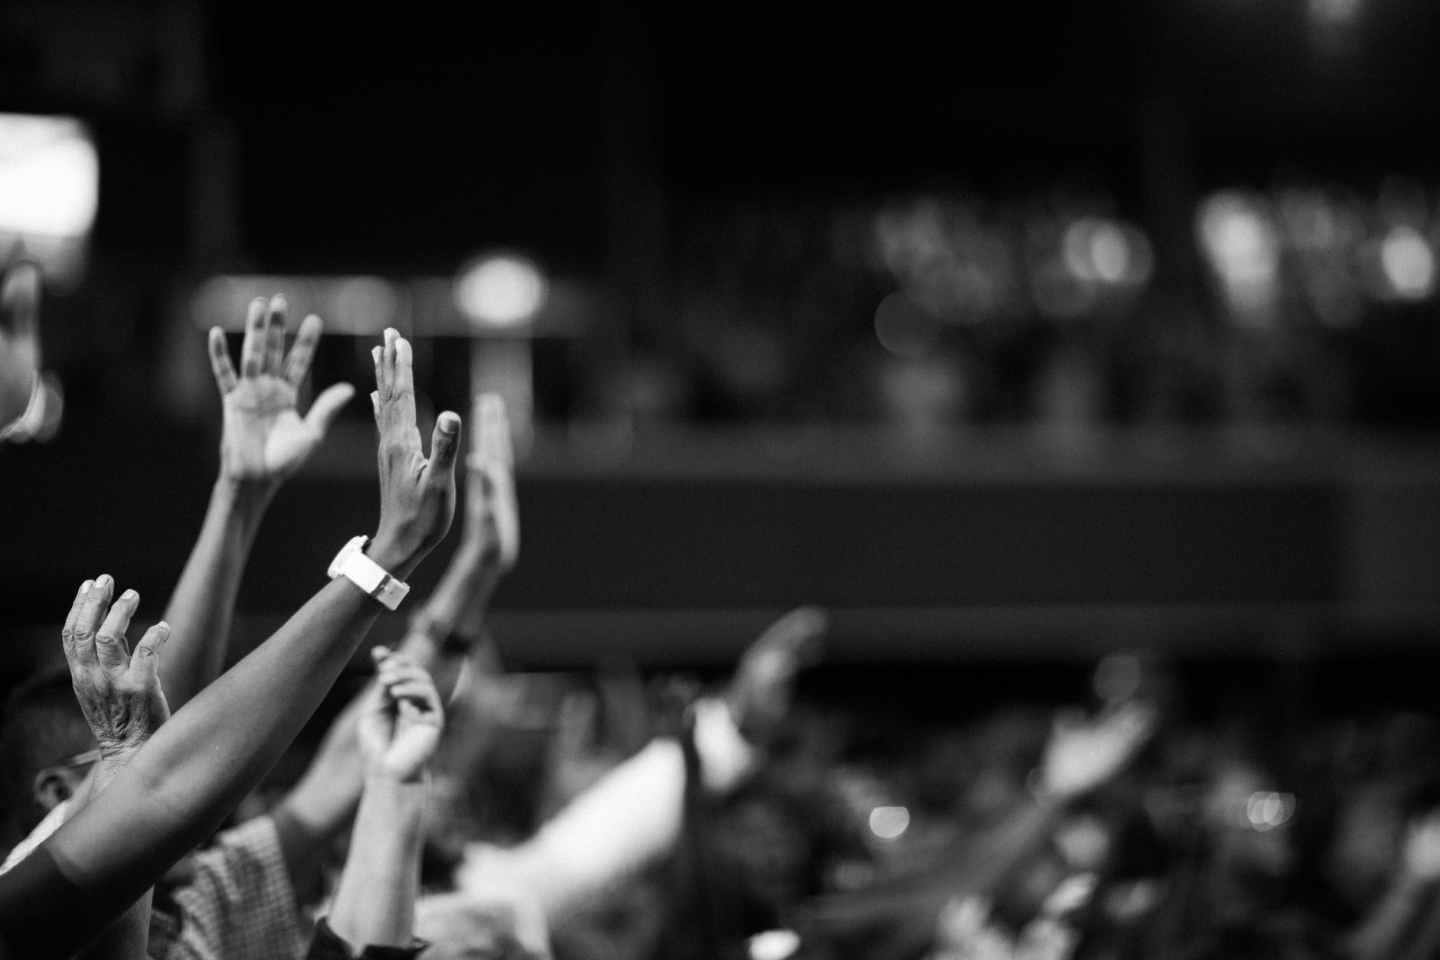 grayscale photography of hands waving